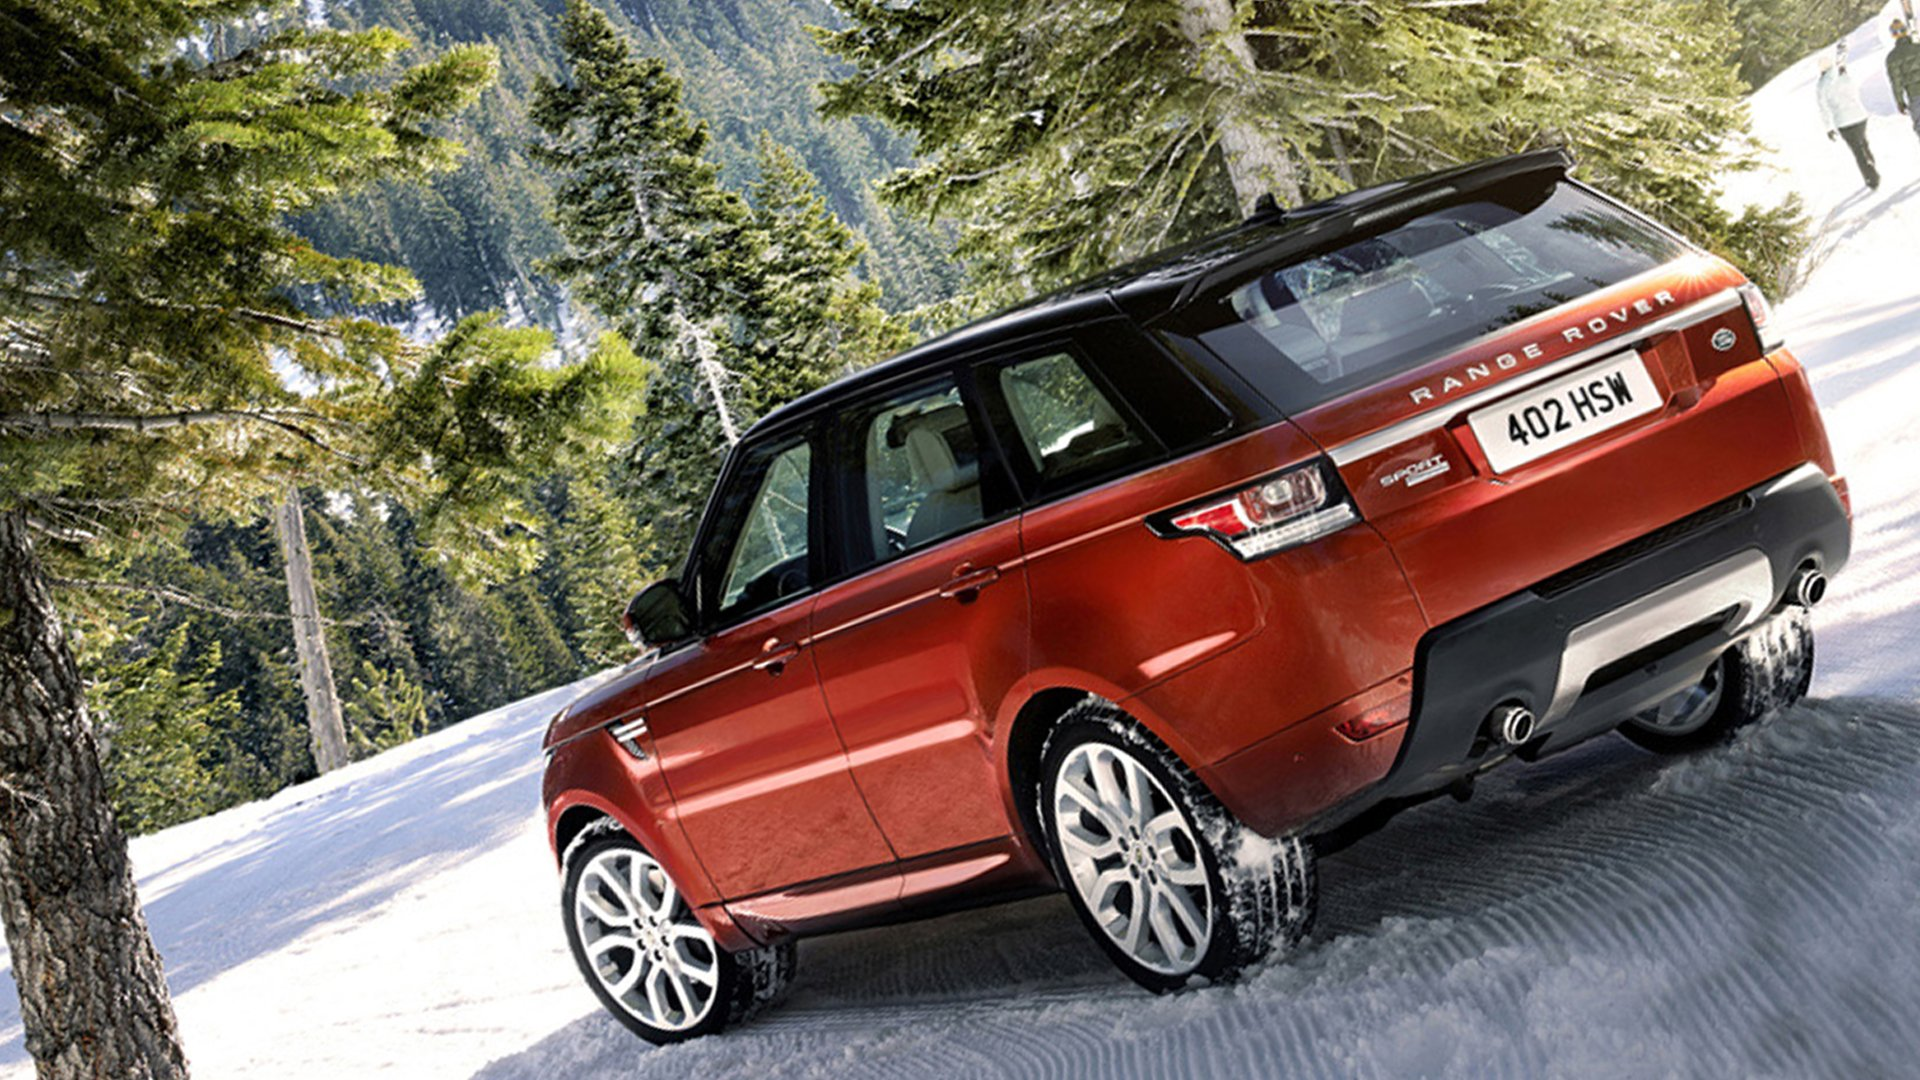 New 2019 Range Rover Sport Wallpaper HD Desktop